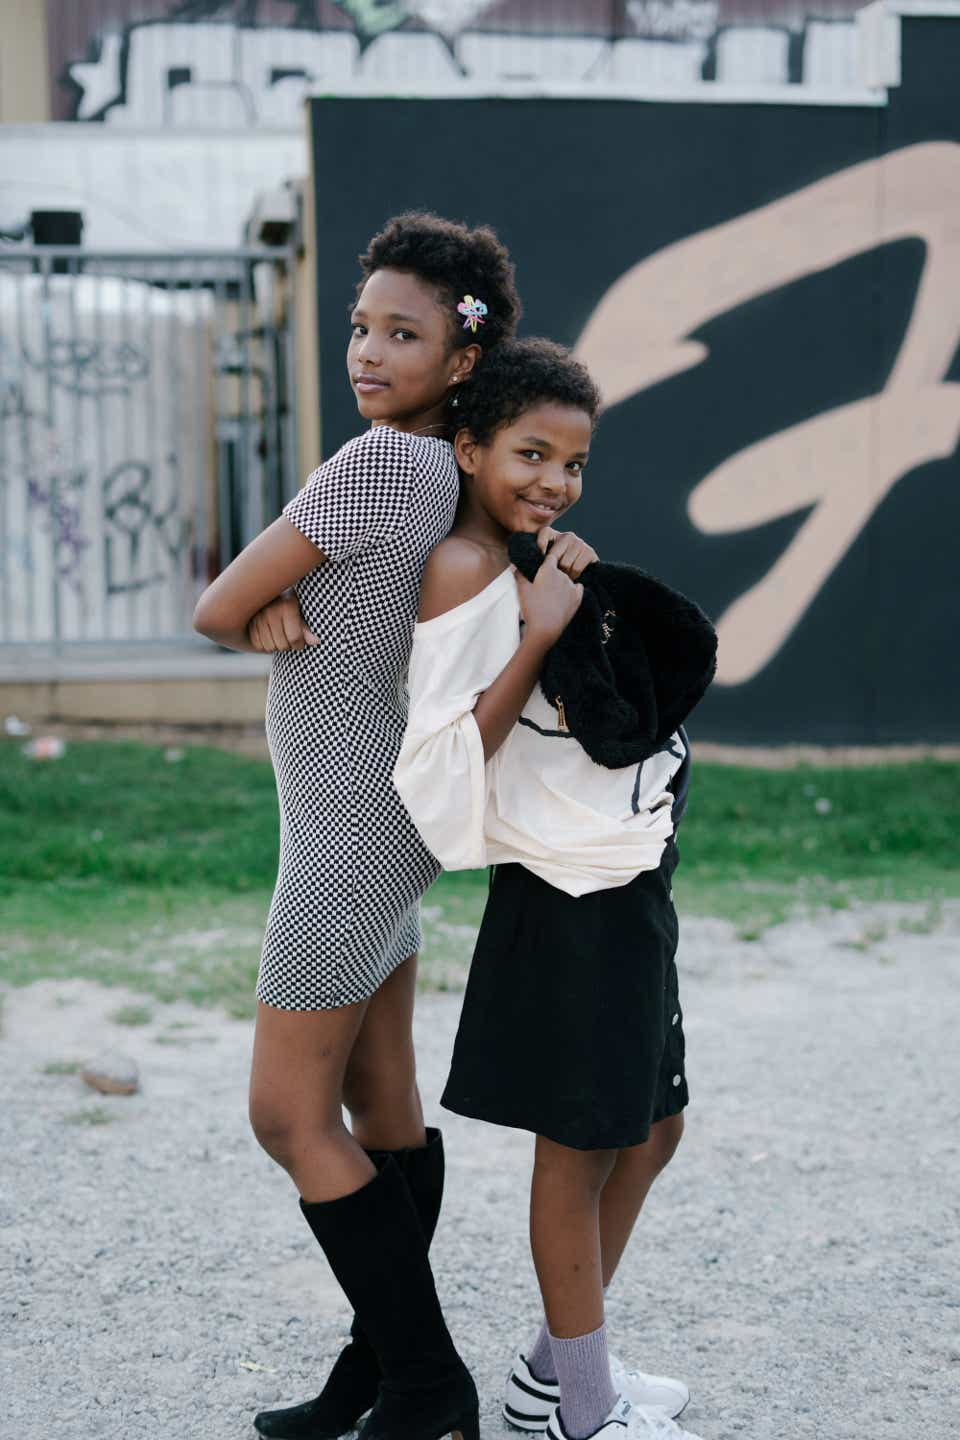 Sisters Aélaa & Jahara Bell are seen posing with their backs to each other. Aélaa on the left is older and picked out a black-and-white short-sleeved mini dress and paired it with knee-high black go go boots. Her little sister Jahara is wearing a white, oversized T-shirt with a black purse and a black mini skirt. She's also wearing gray socks and white sneakers.